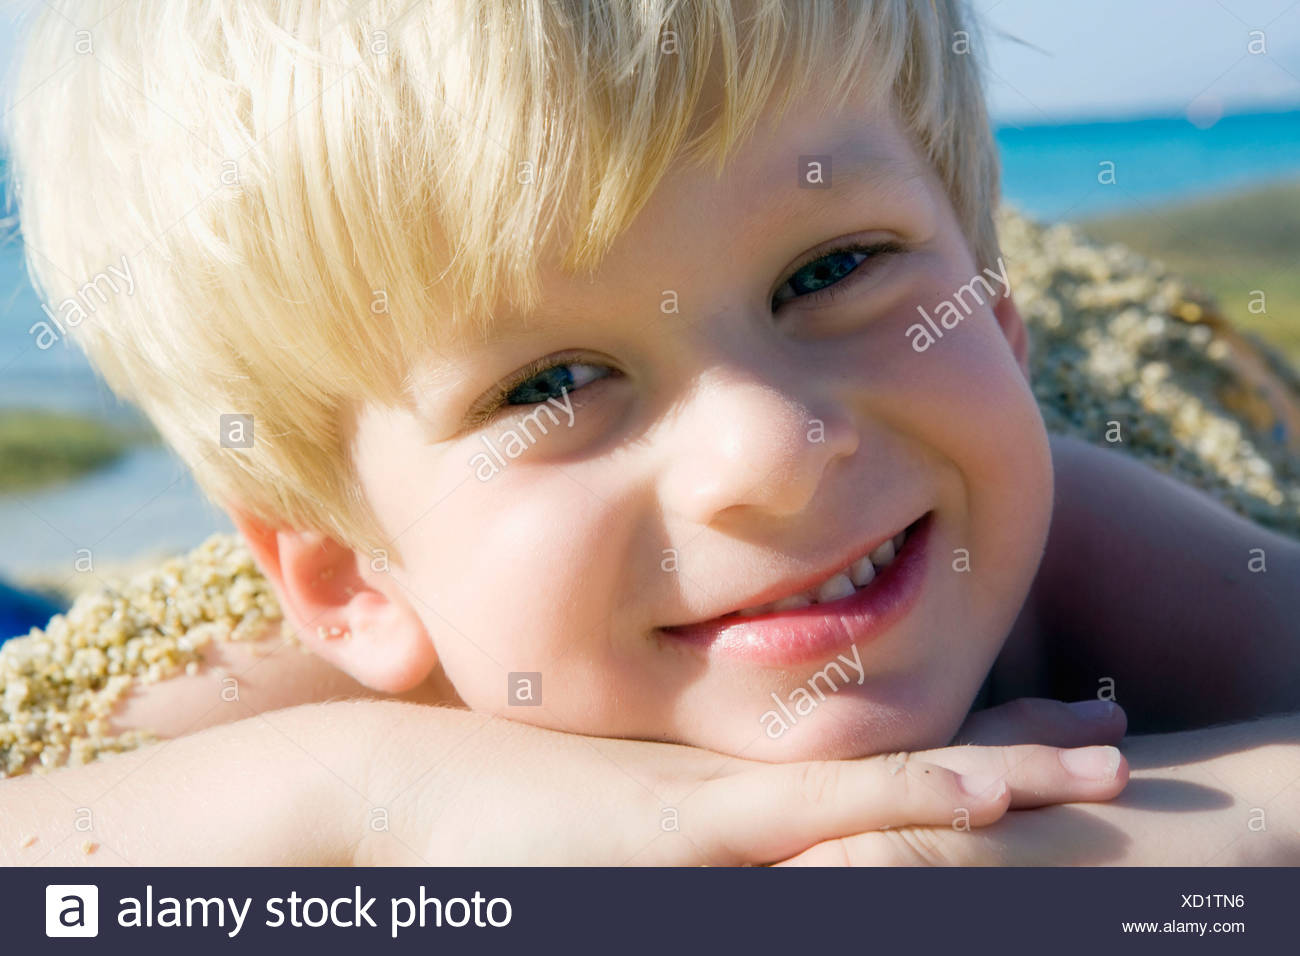 Young boy lying in the sand at the beach smiling. Stock Photo